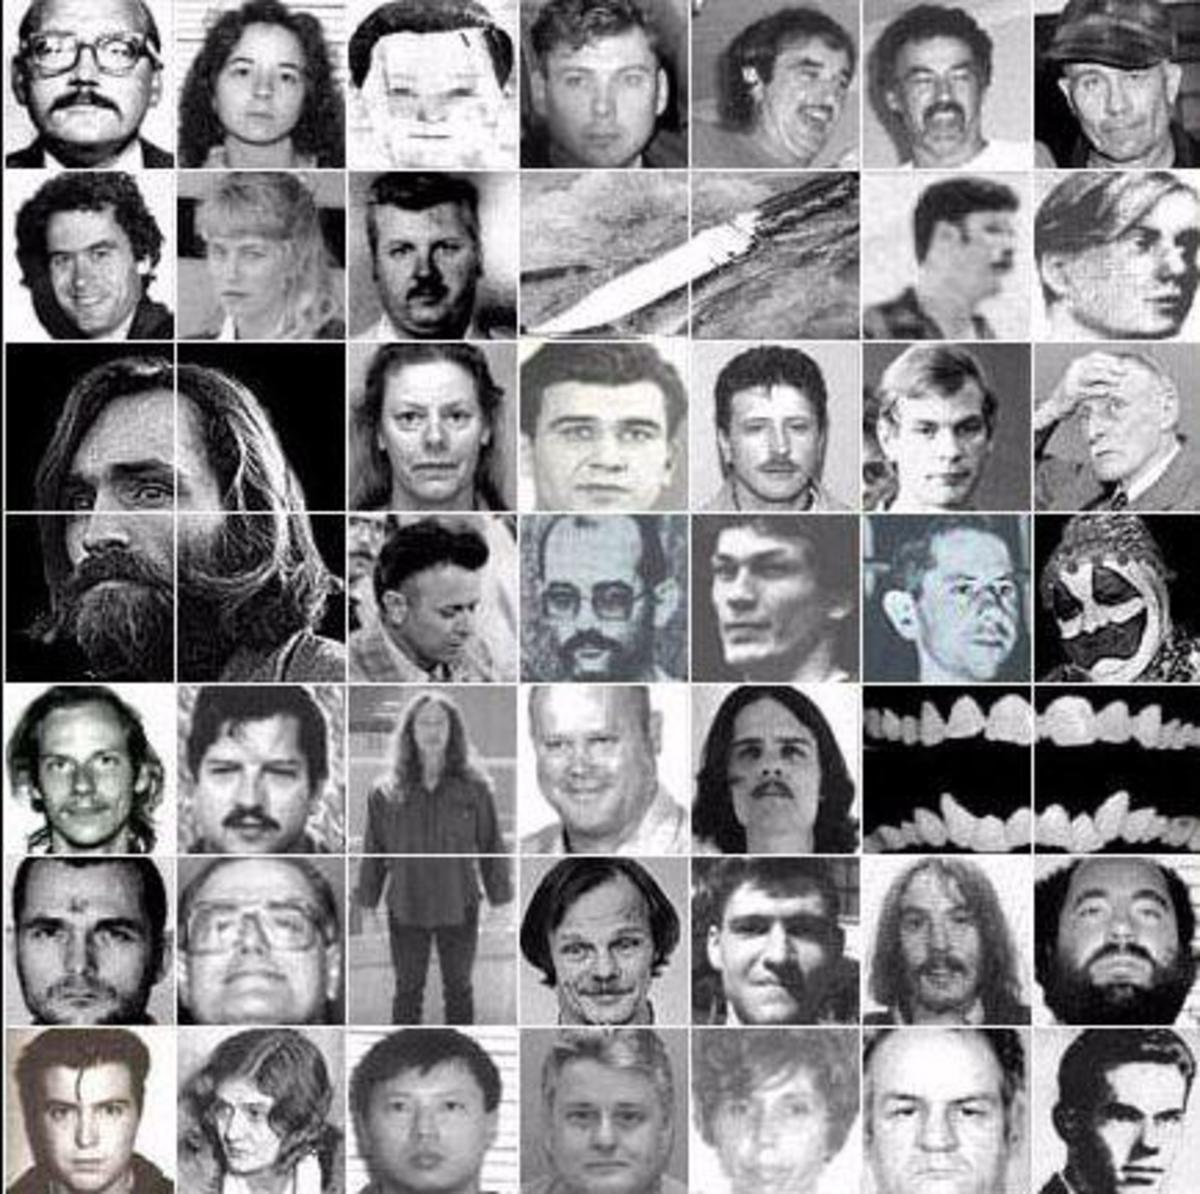 an overview of the charles manson murders in the united states of america We as human beings can invoke the ground here called the united states of  america  i said, no, it's just sort of my own interest in american folklore   charlesmansoncom - extensive information on the manson family cielodrive com.